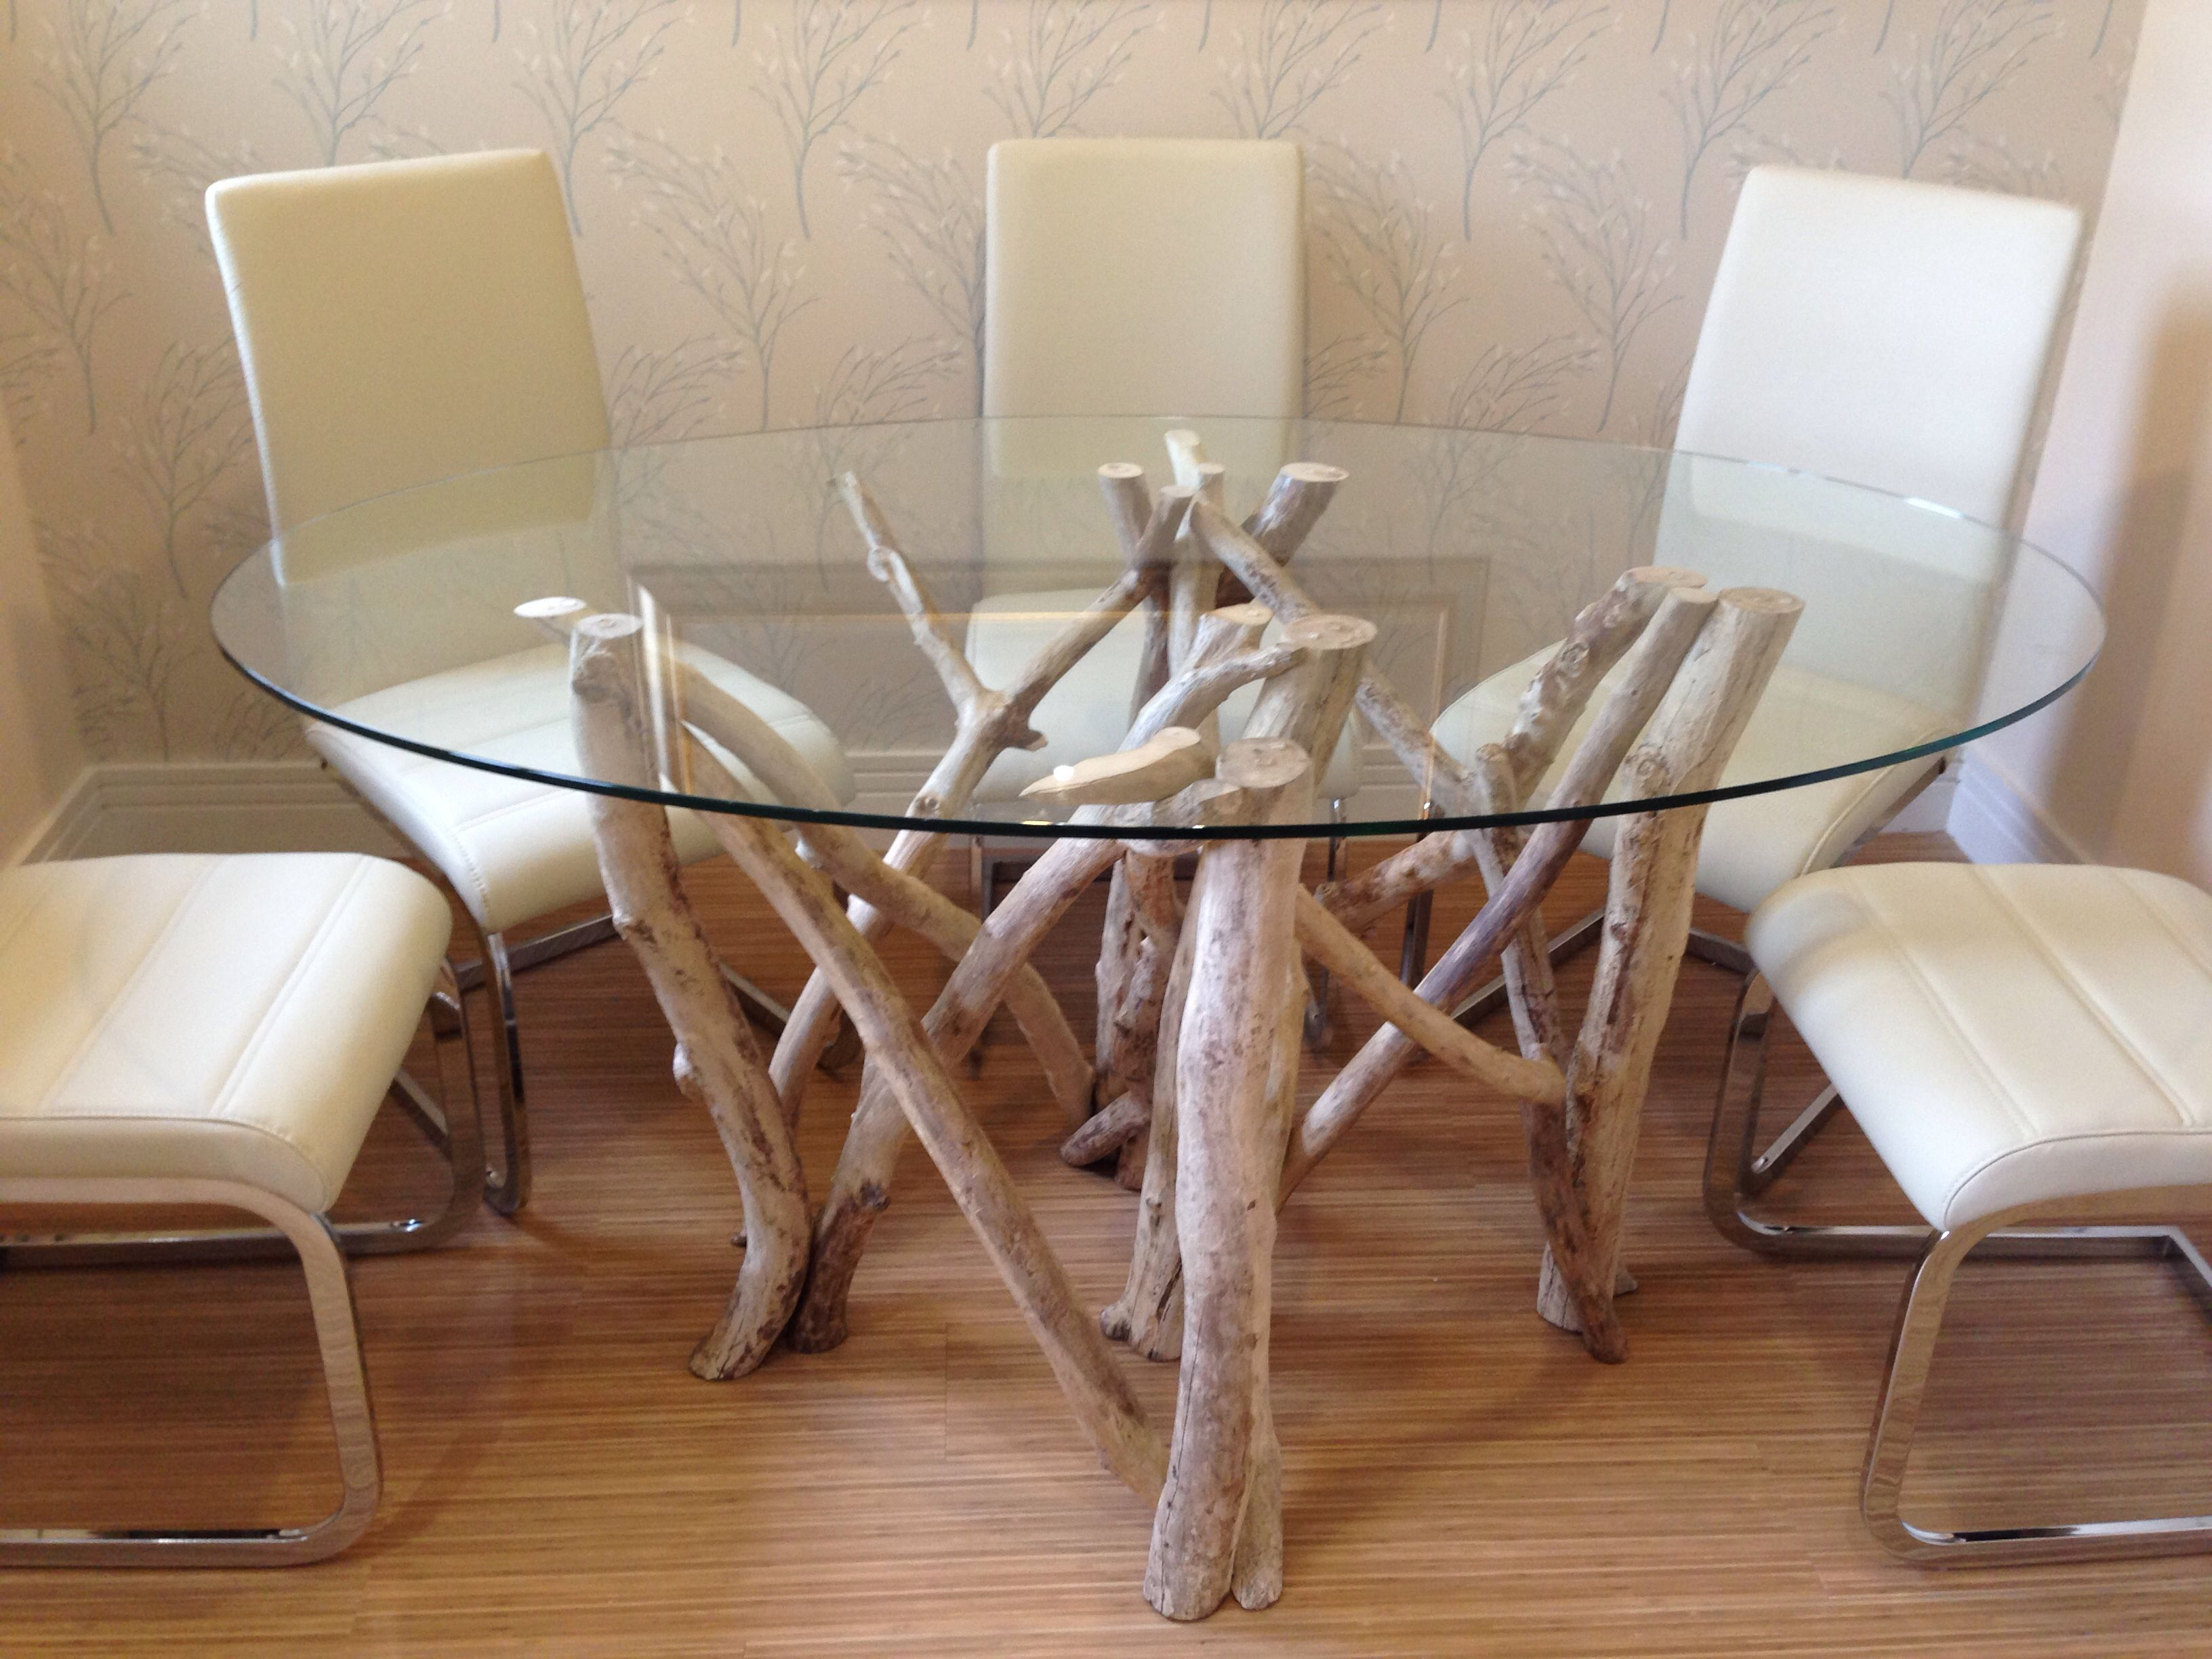 Bespoke dining table design - Bespoke Driftwood Dining Table Made By Colin Semple Furniture Design Peebles Scotland